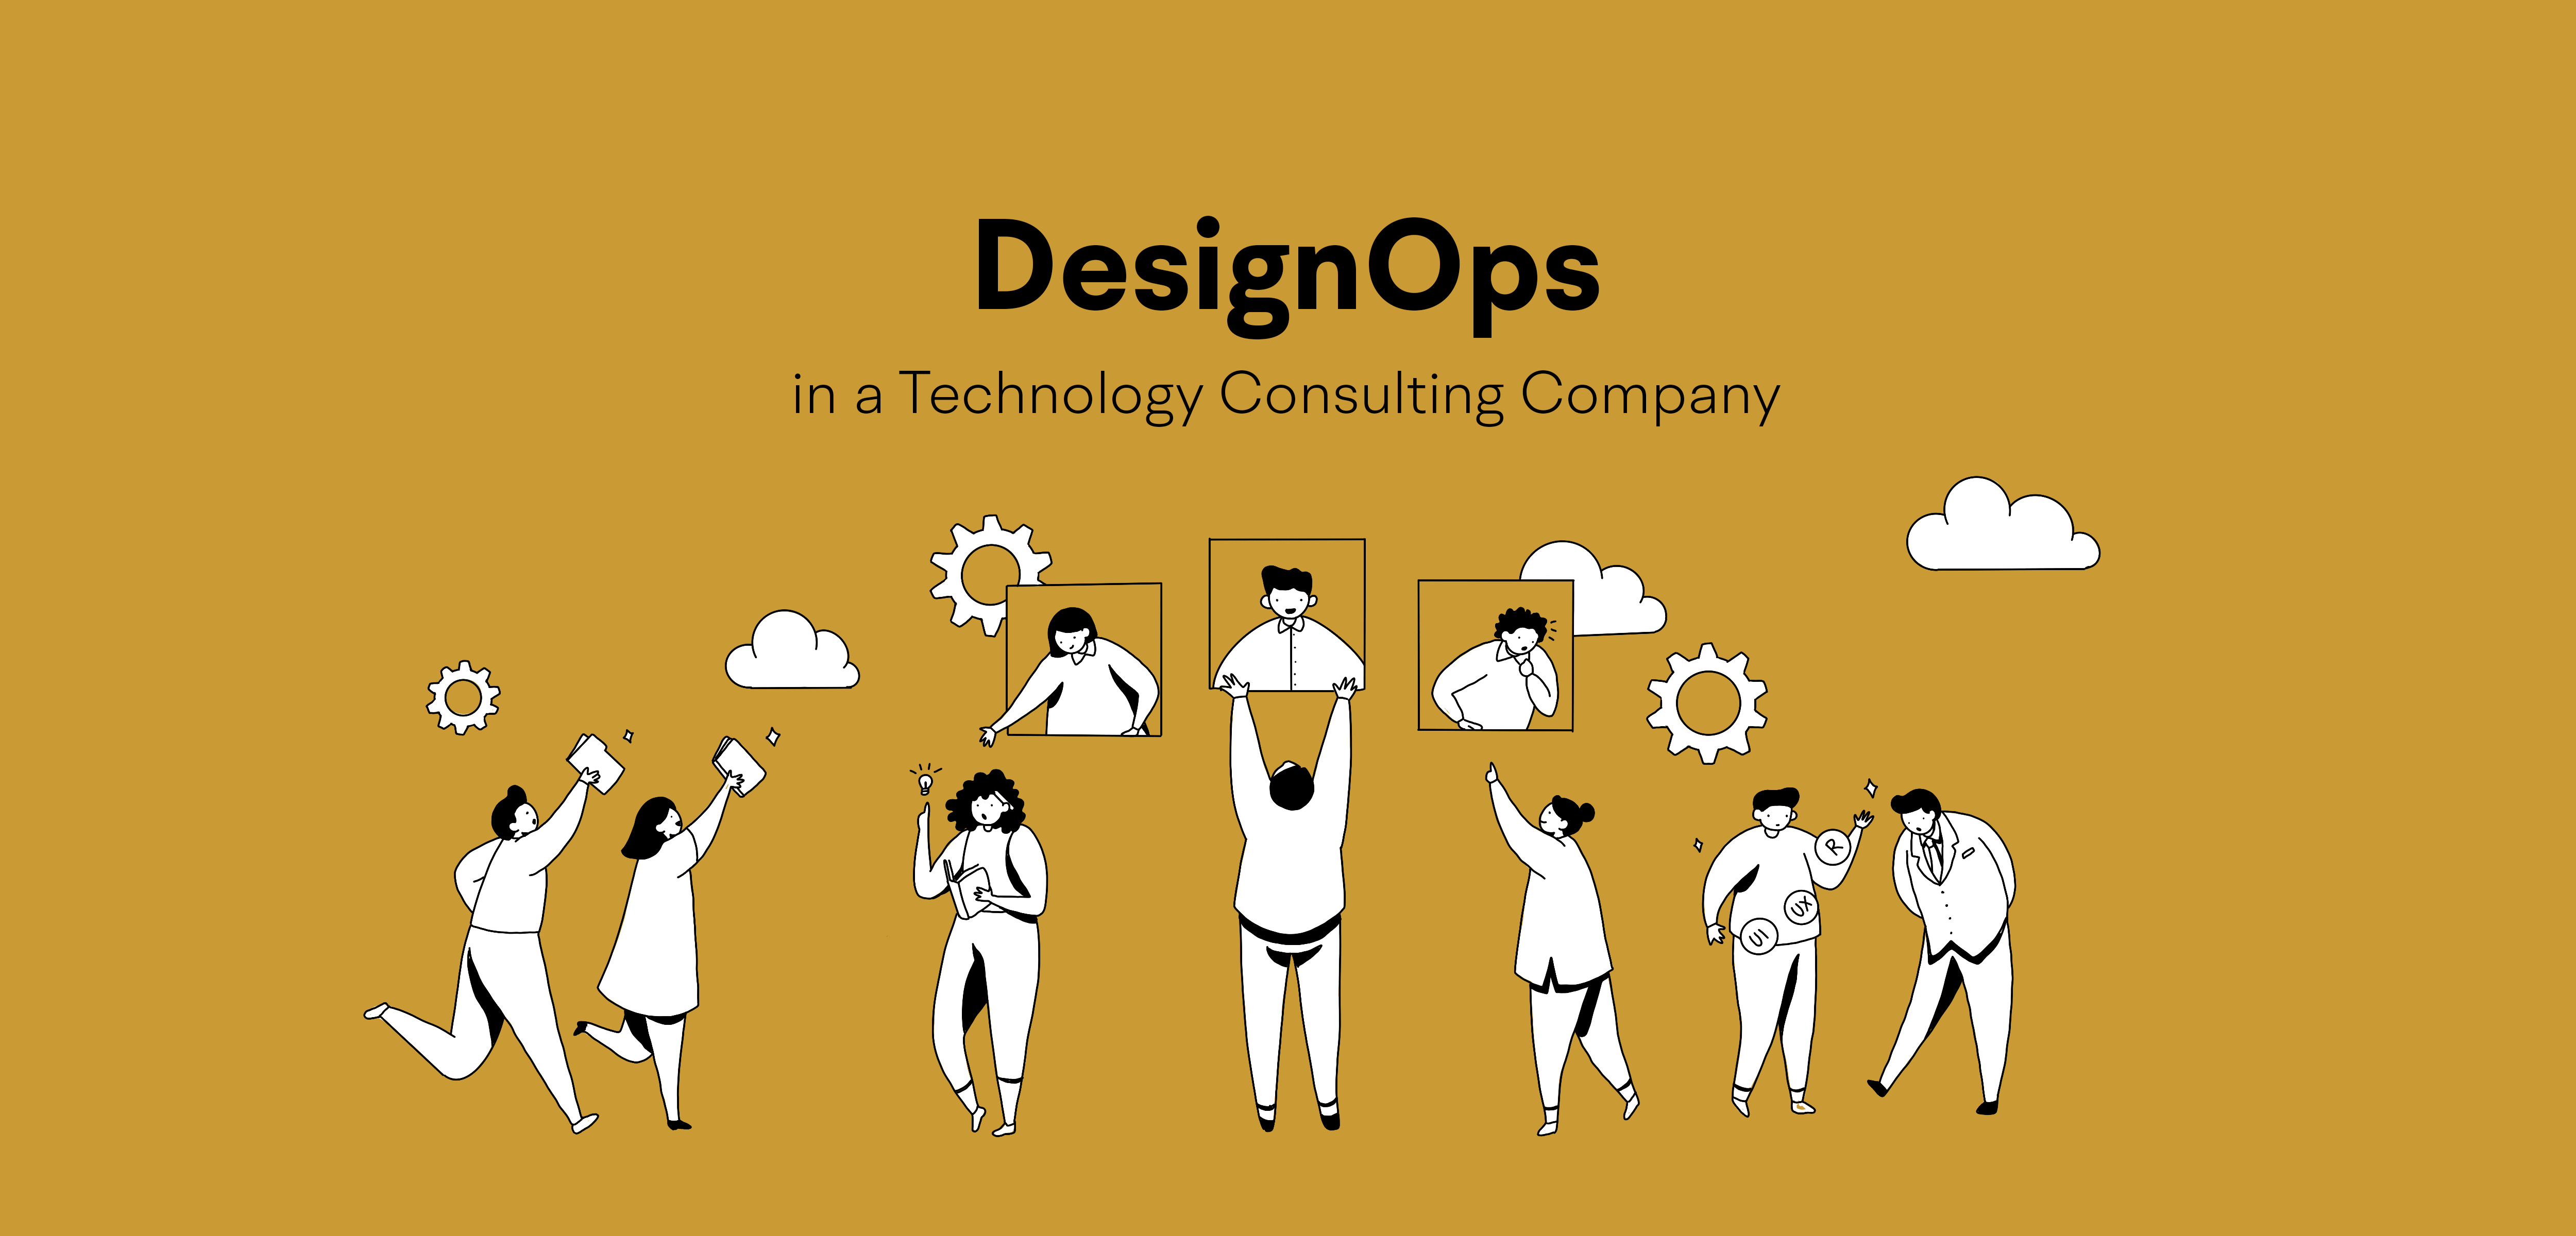 DesignOps in a Technology Consulting Company